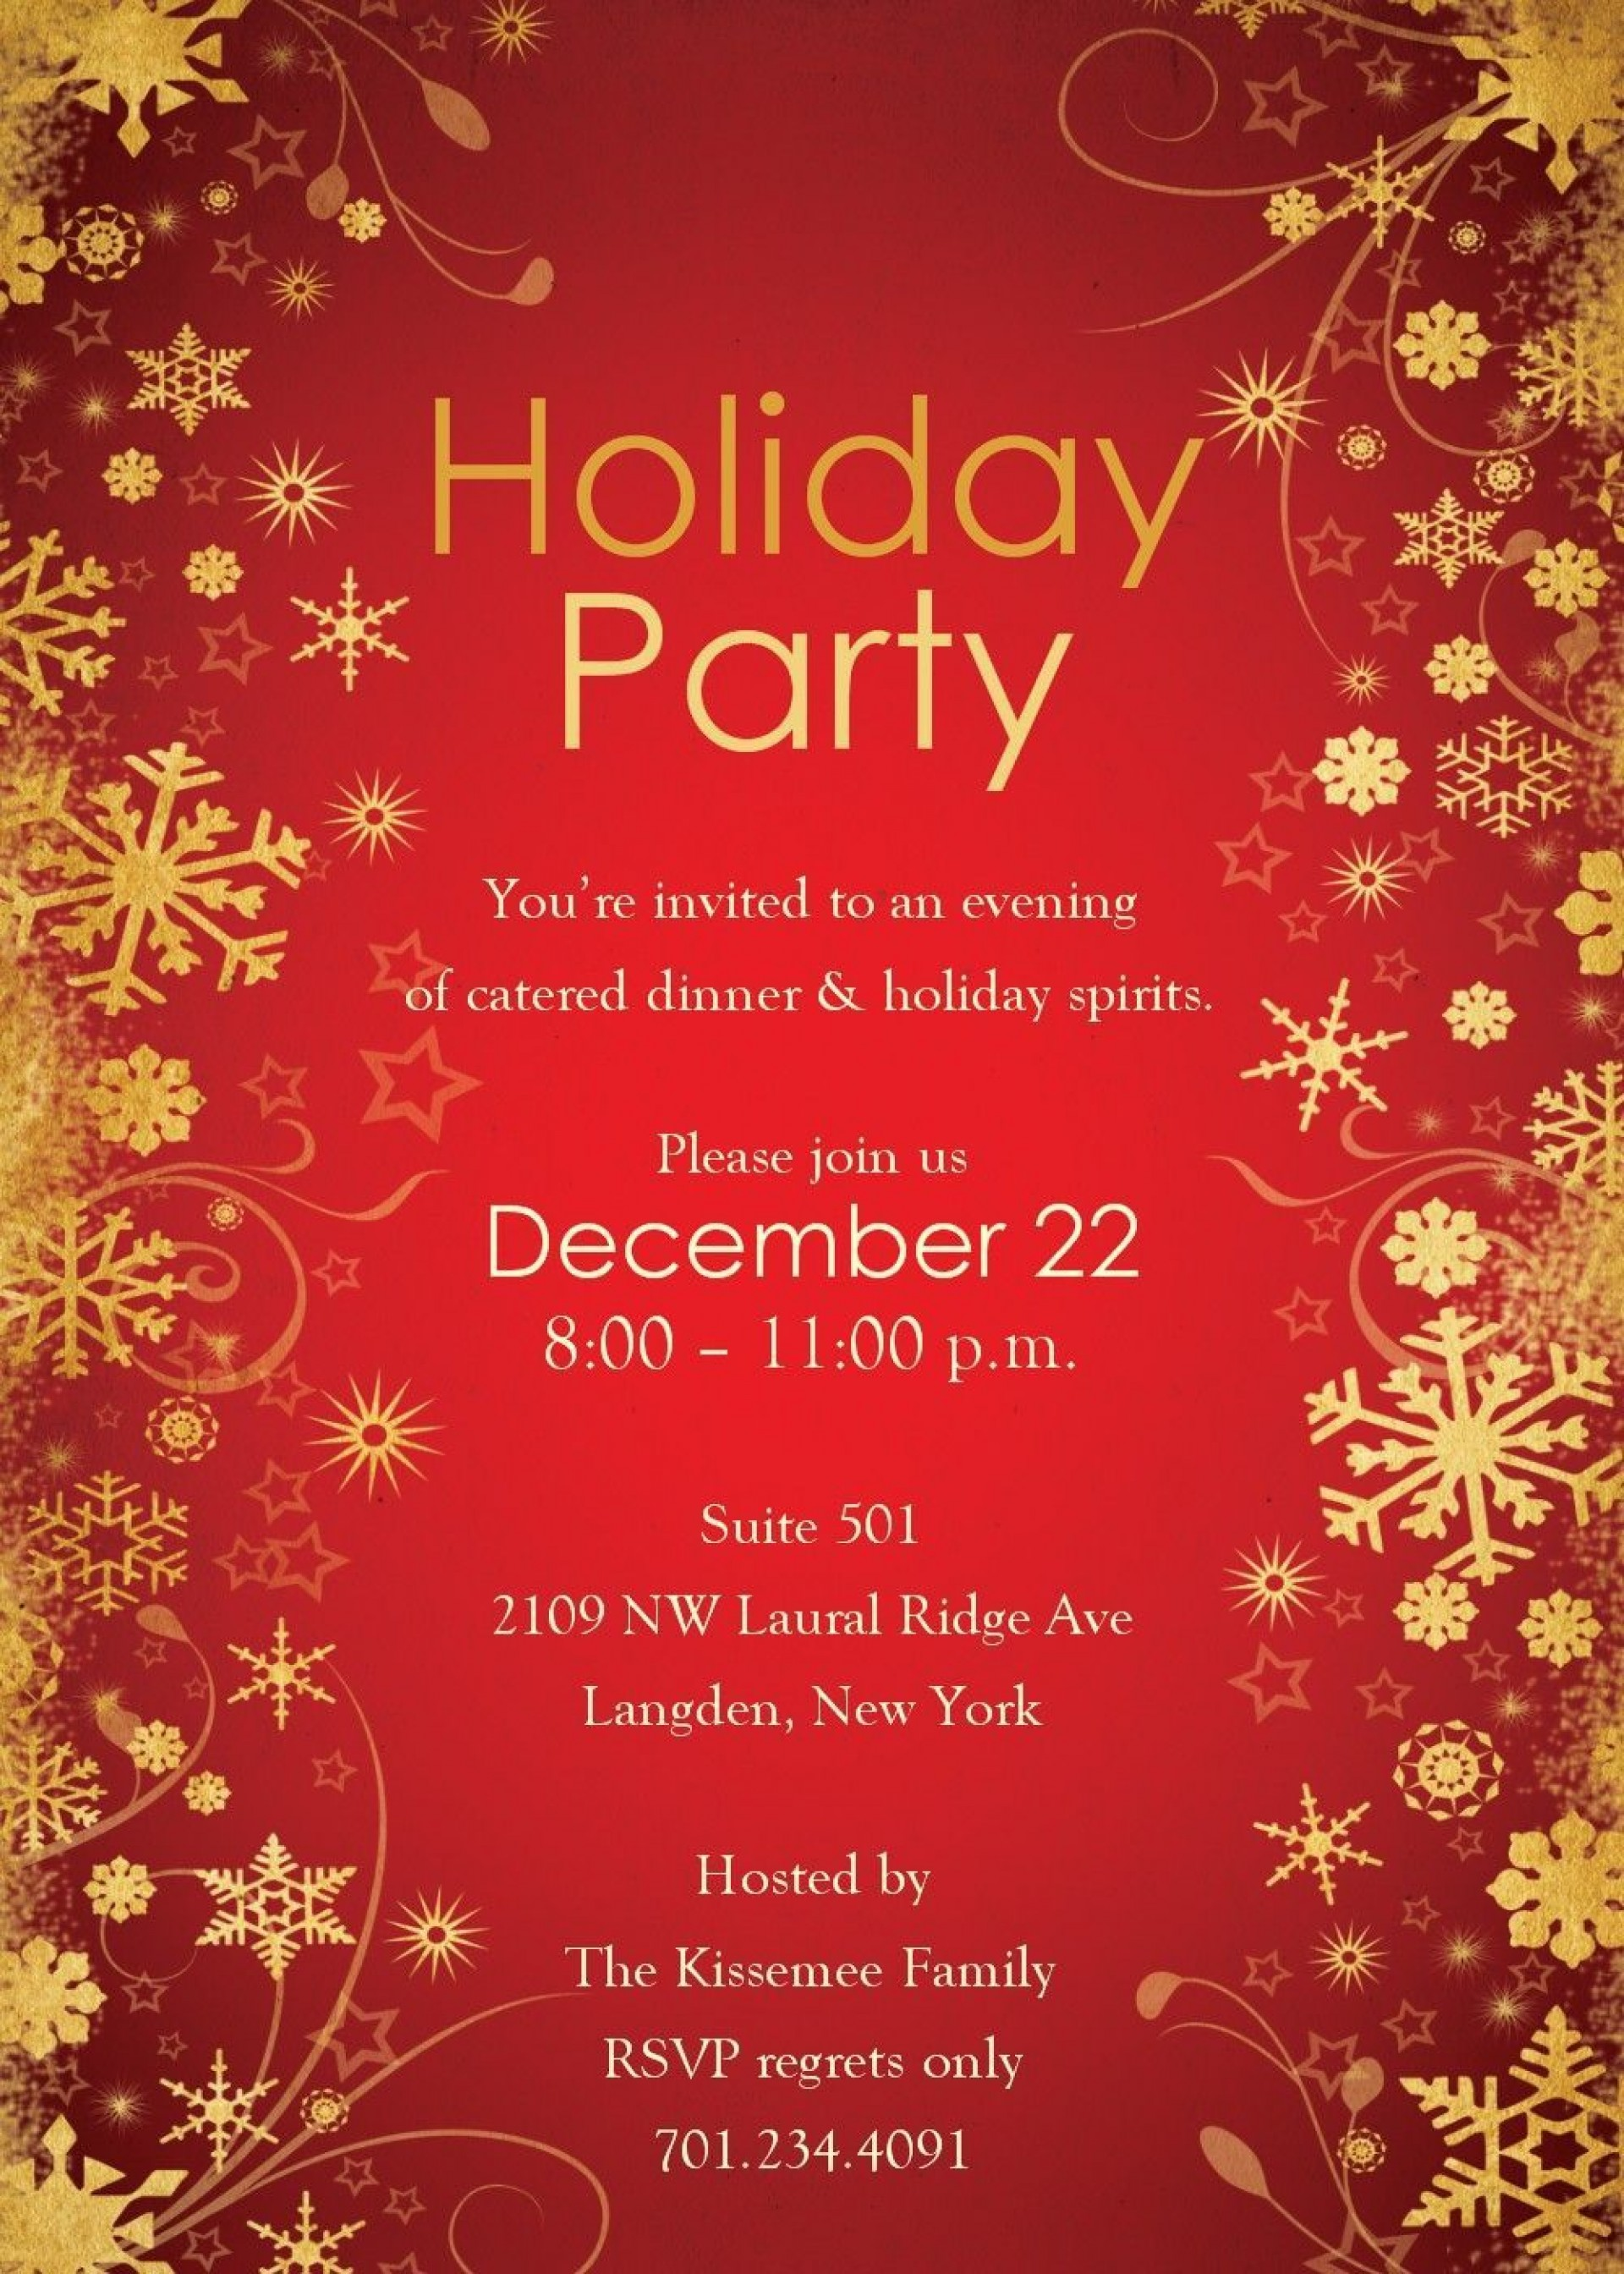 005 Shocking Free Holiday Party Invitation Template For Word Sample 1920